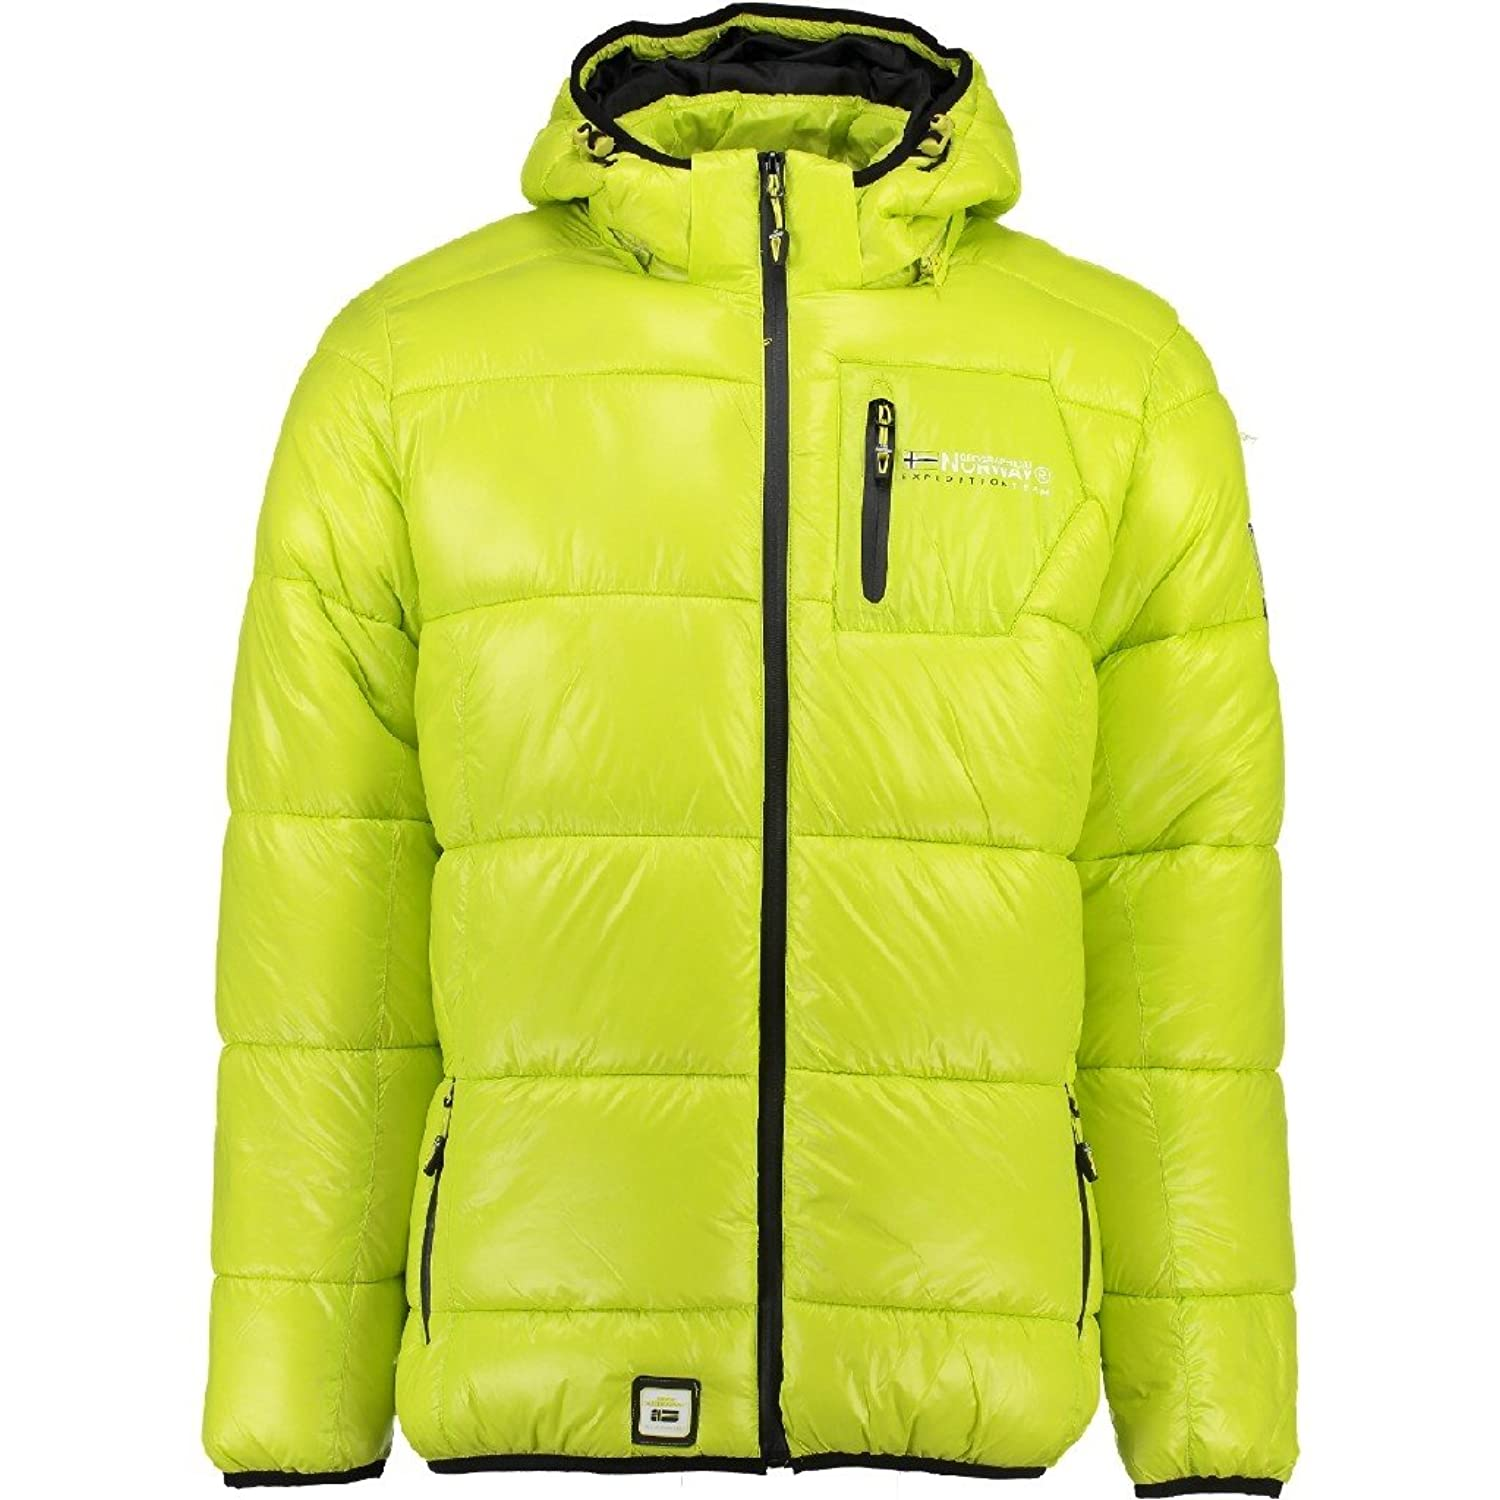 Geographical Norway Men's Quilted Jacket